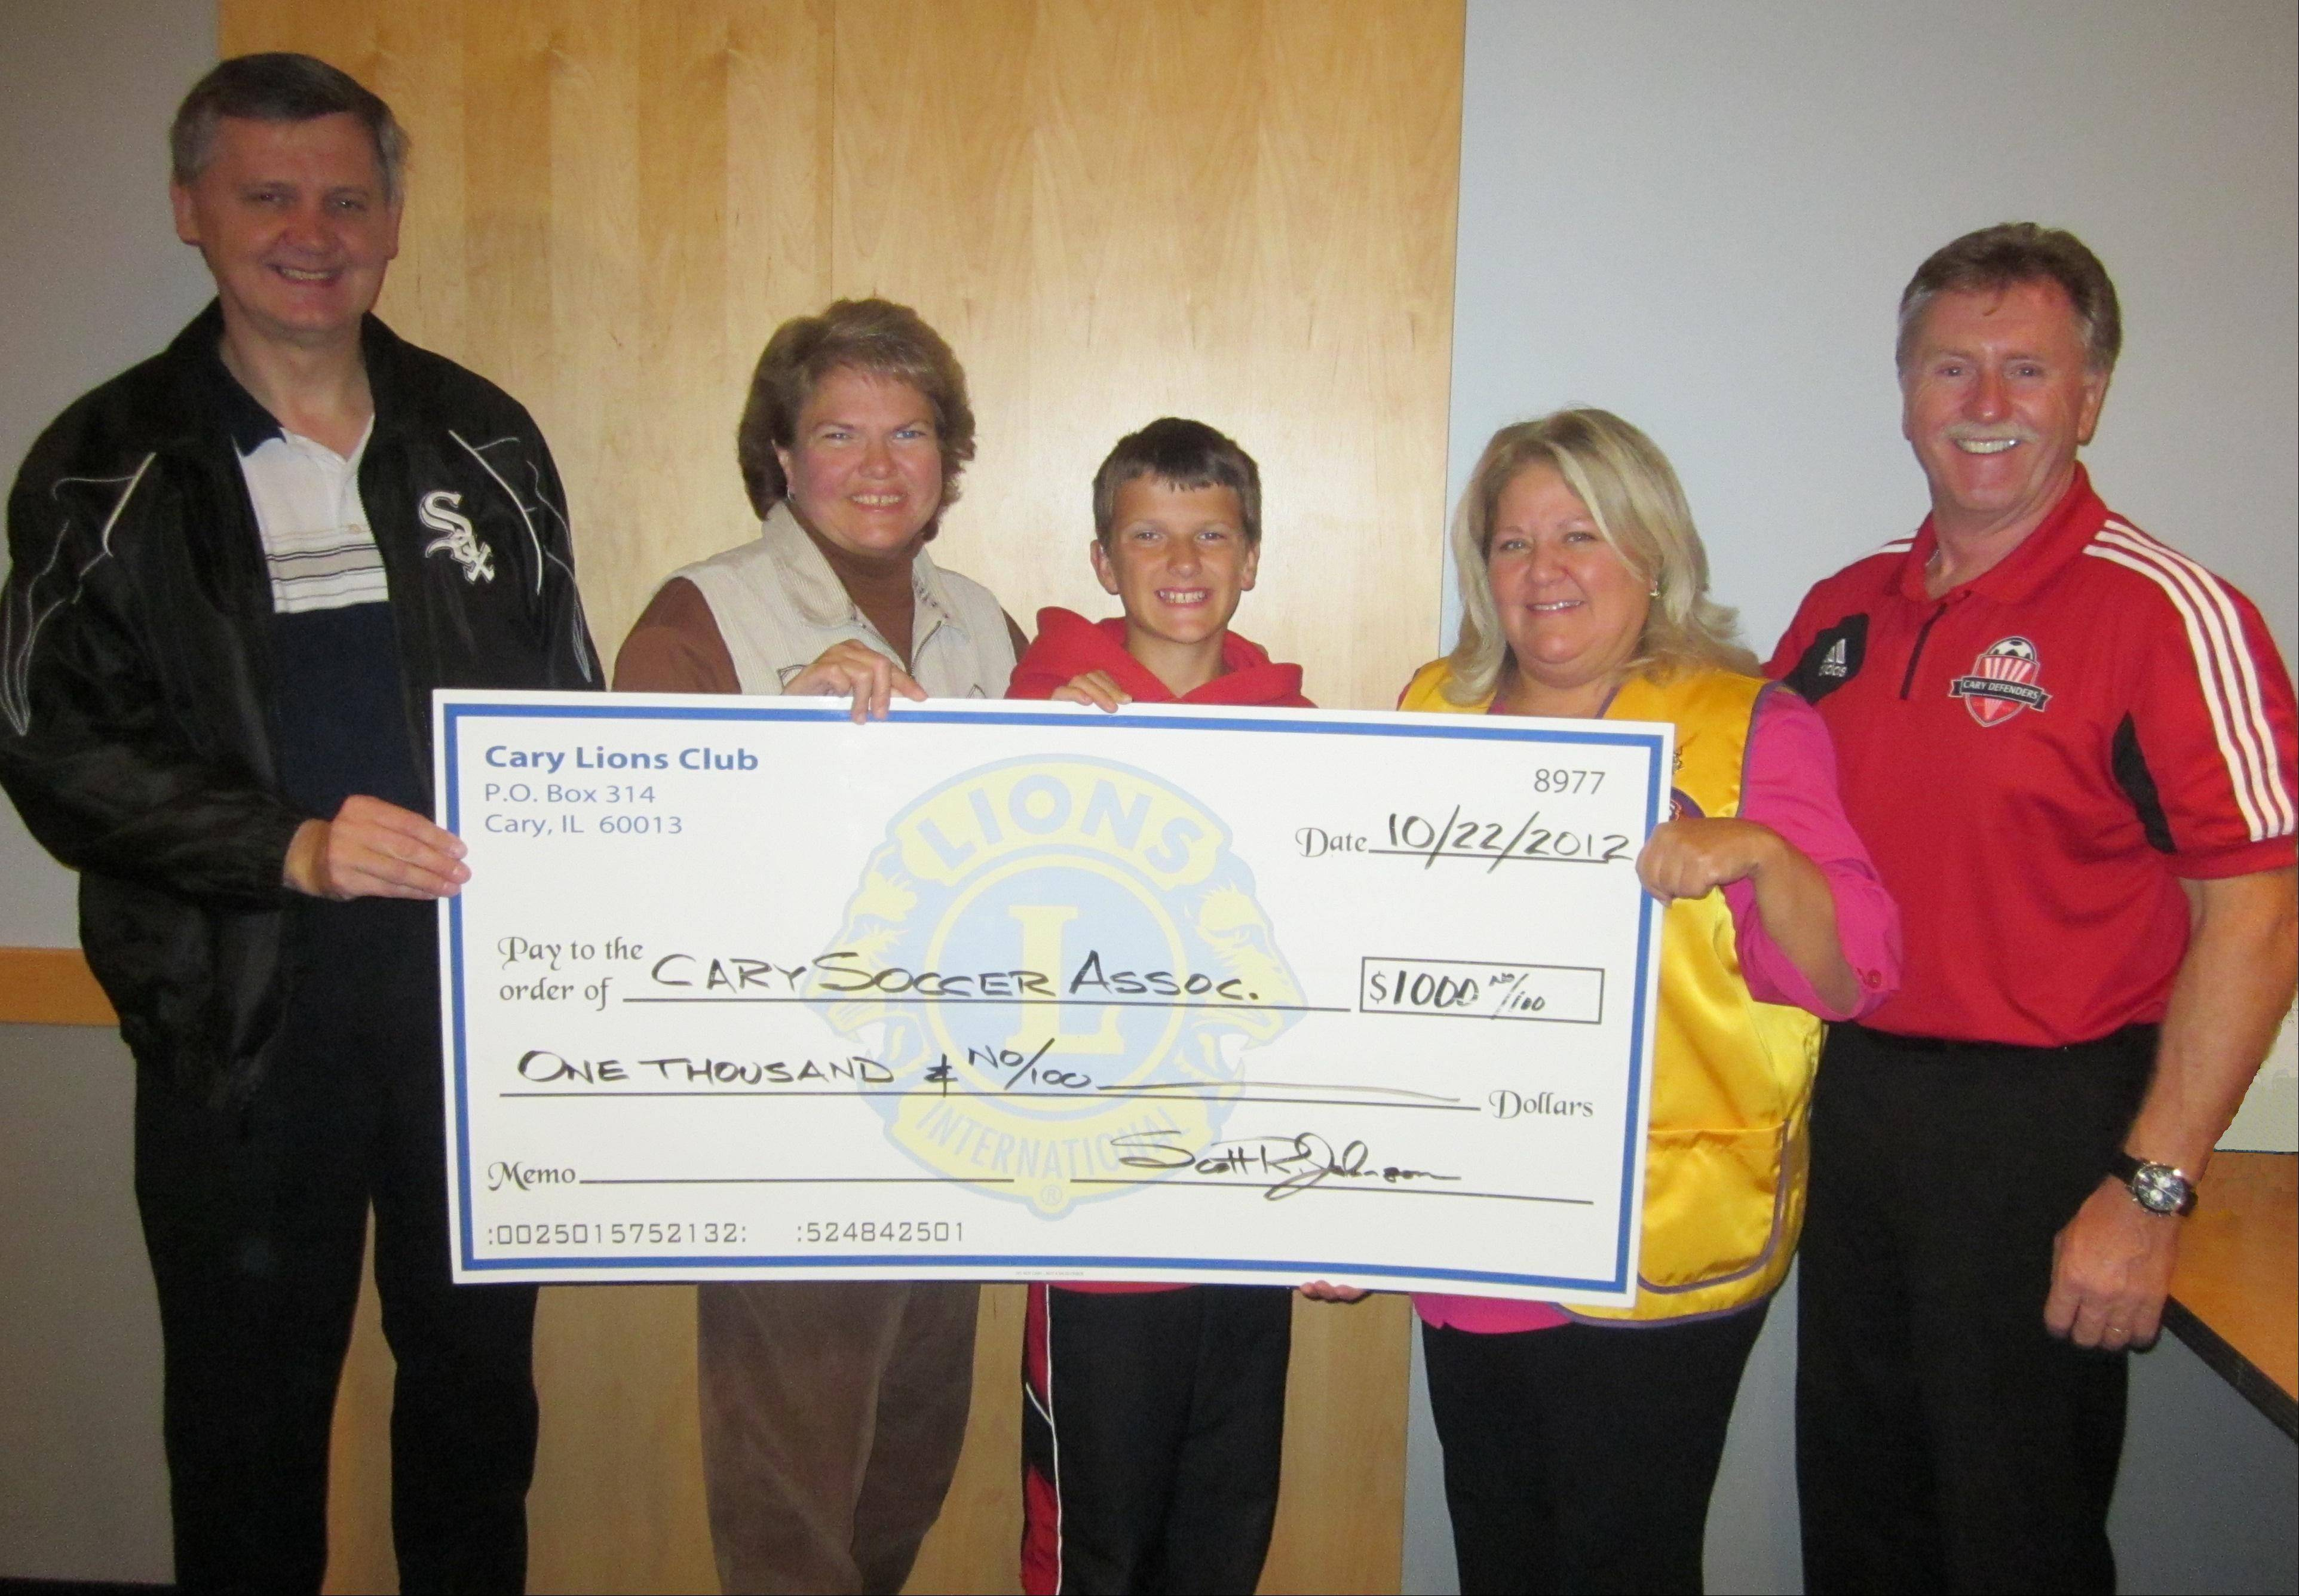 Mark and Ellen Wisniewski, left, join their son Andrew Wisniewski, a hearing-impaired participant in the soccer program, in thanking Cary Lions president Holly Kelps and Hughie O'Malley, president of the Cary Soccer Association, for the donation.